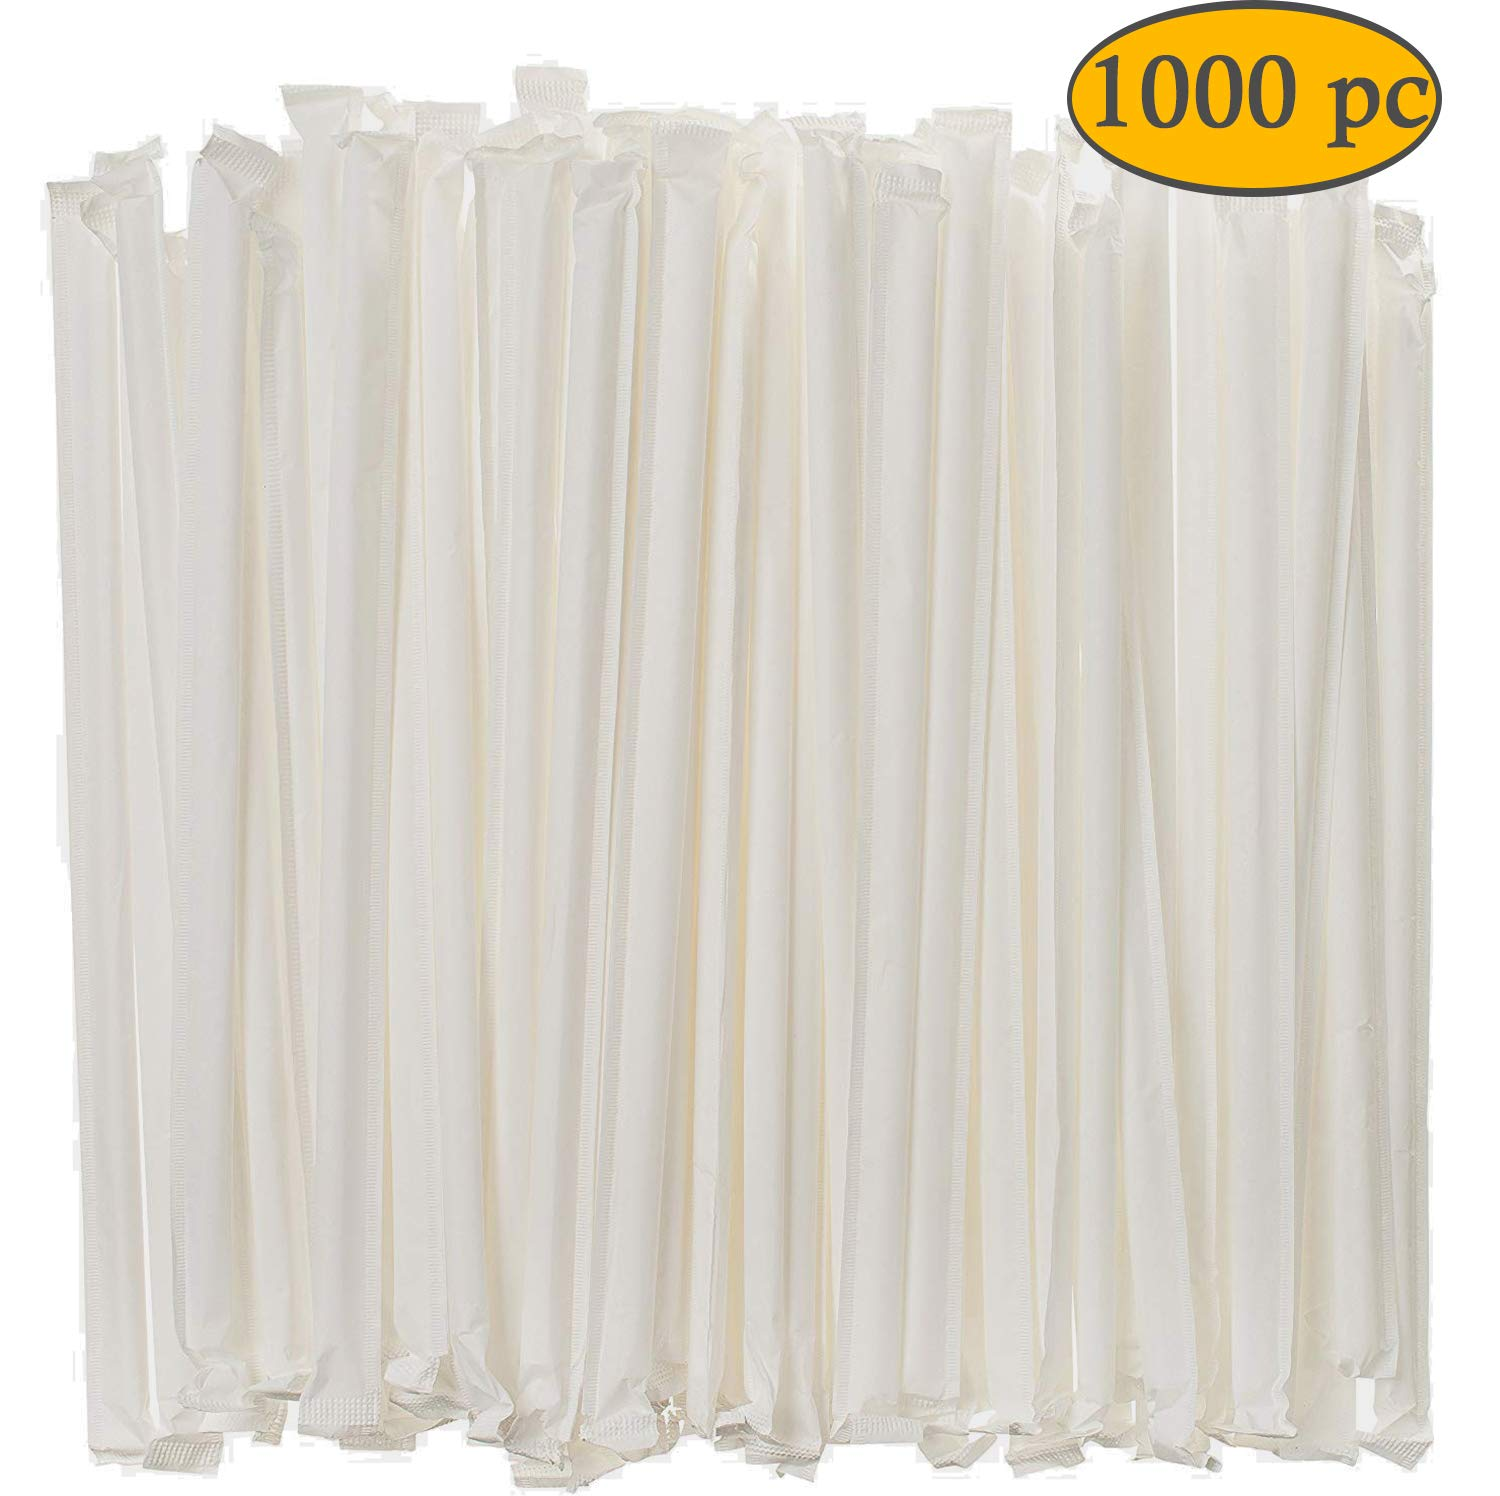 DuraHome Clear Plastic Straws Individually Wrapped 1000 Pack - 8 inch Drinking Straw, BPA Free - Restaurant Style Disposable Straws, Bulk Set by DuraHome